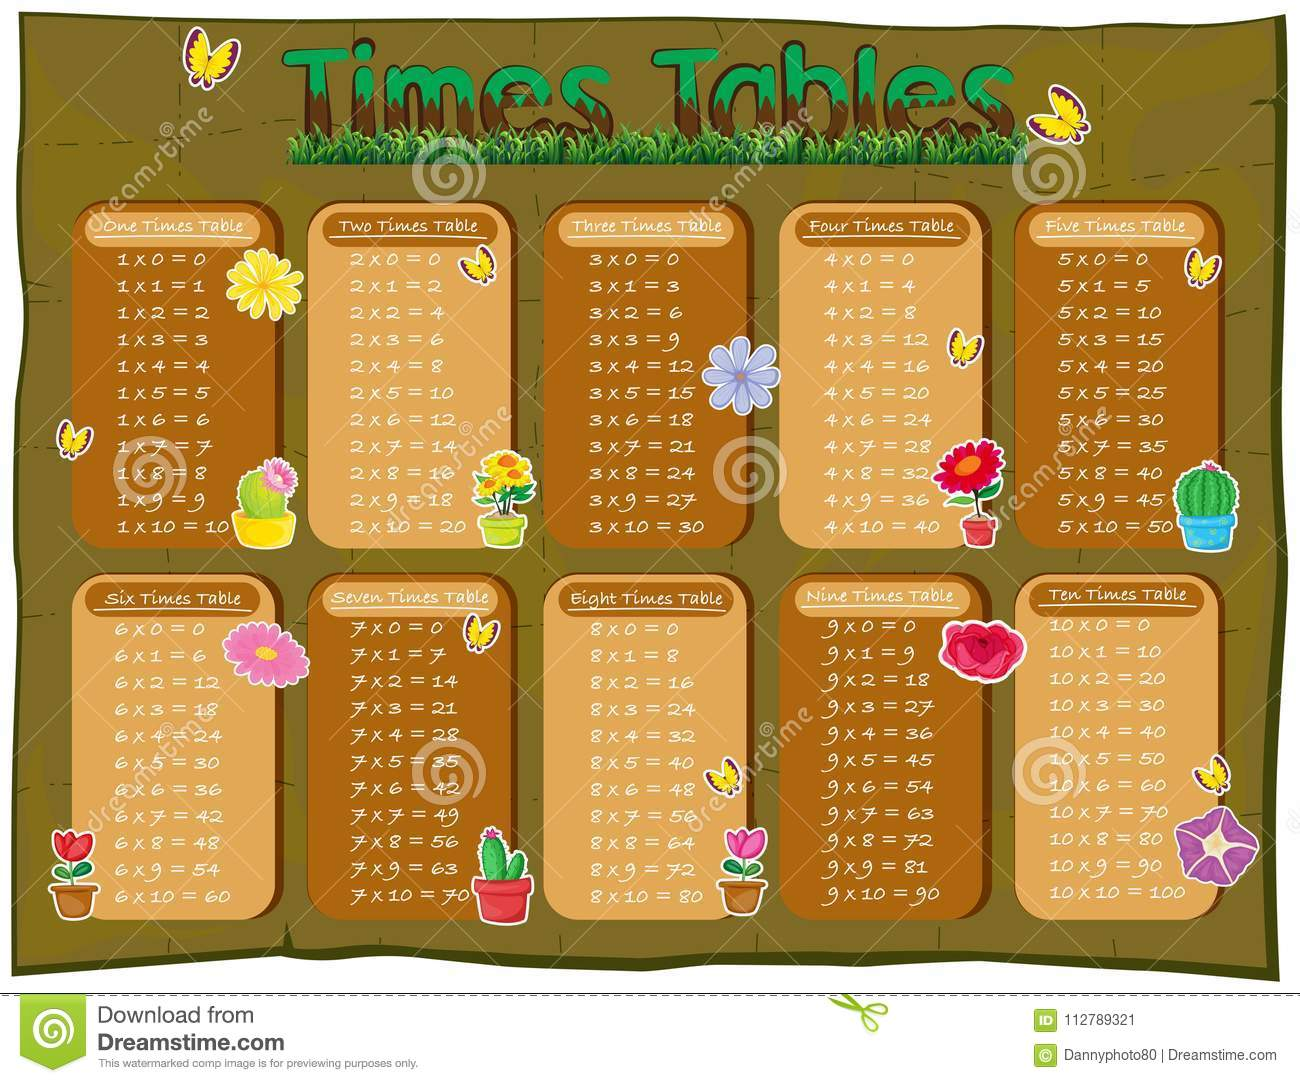 Times Tables Diagram With Flowers In Background Stock